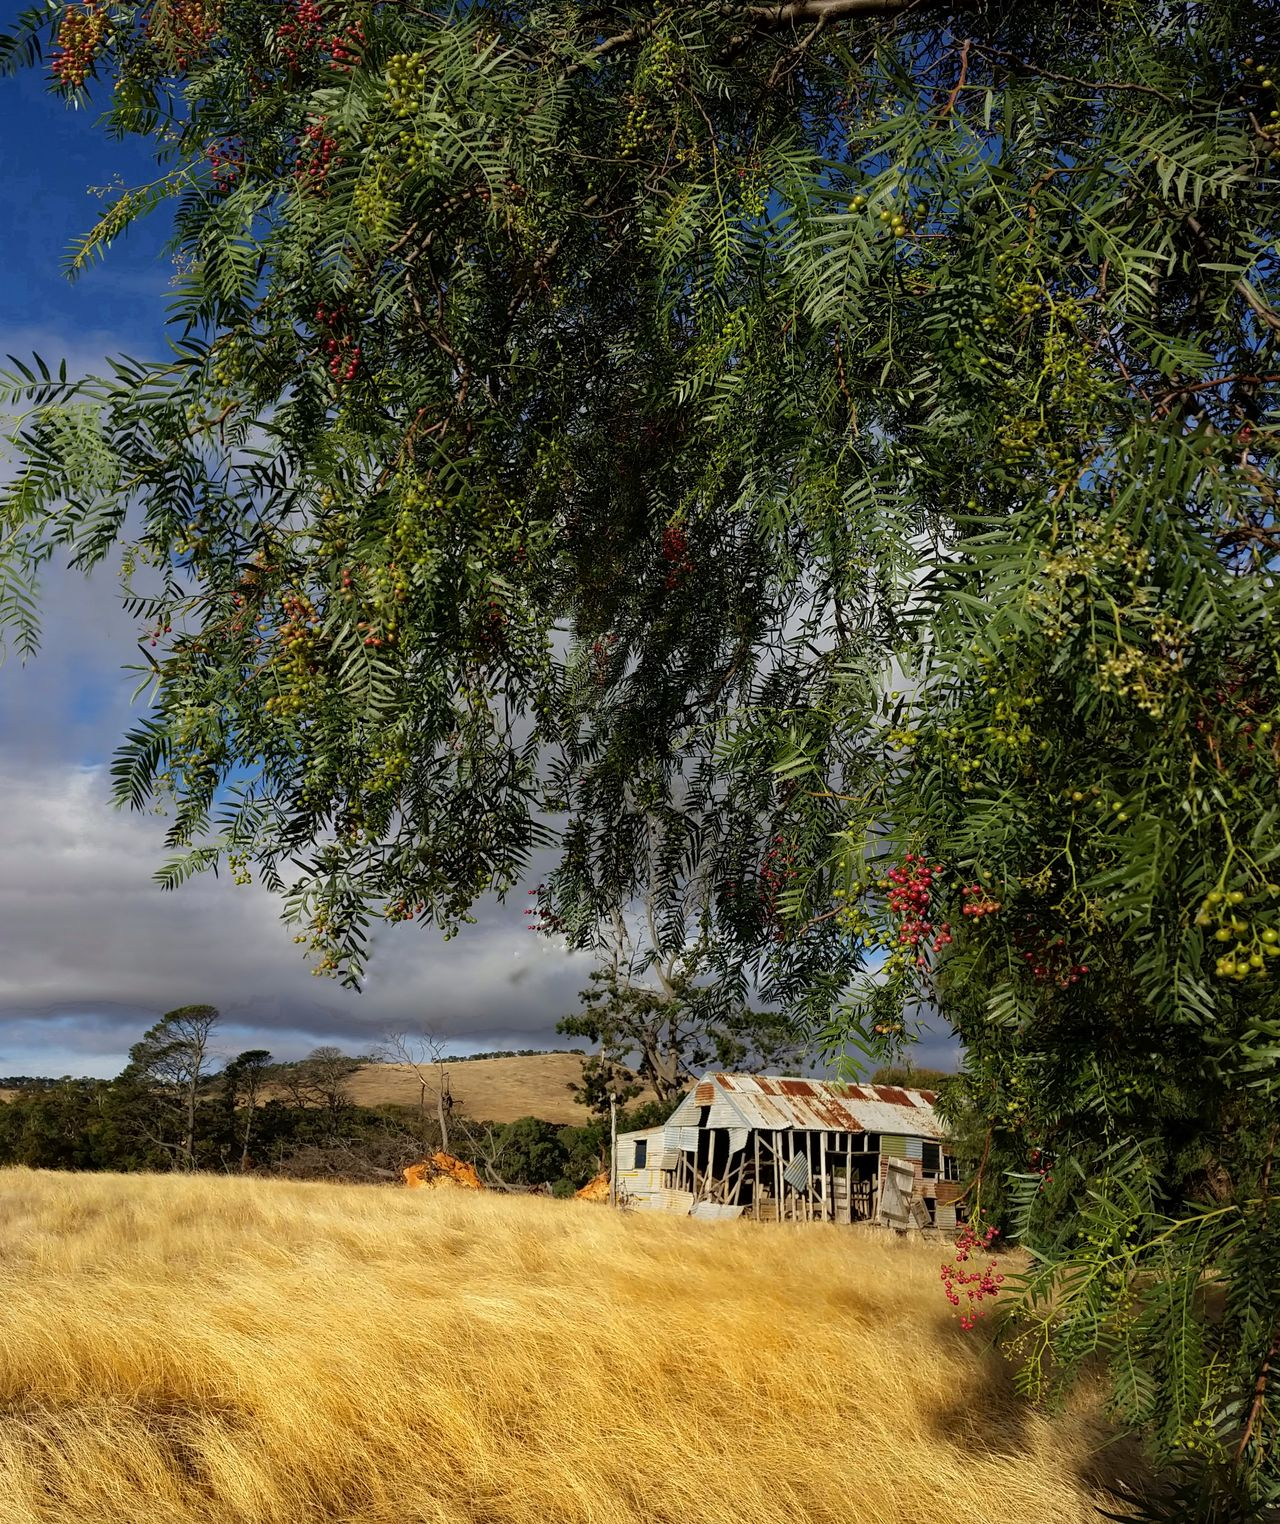 'The Old Woolshed & the Pepper Tree.' (Mini series 2) Abandoned Buildings Shearingshed Farmlife Australian Landscape Farm Life Dramatic Landscape Eye4photography  EyeEm Nature Lover EyeEm Masterclass EyeEm Gallery Tadaa Community Golden Hour Australian Photographers Beauty In Nature Abandoned Eyeemmasterclass My Cloud Obsession☁️ Exceptional Photographs Derelict Beauty Of Decay EyeEm Nature Lovers No People EyeEmNewHere Victoria Australia